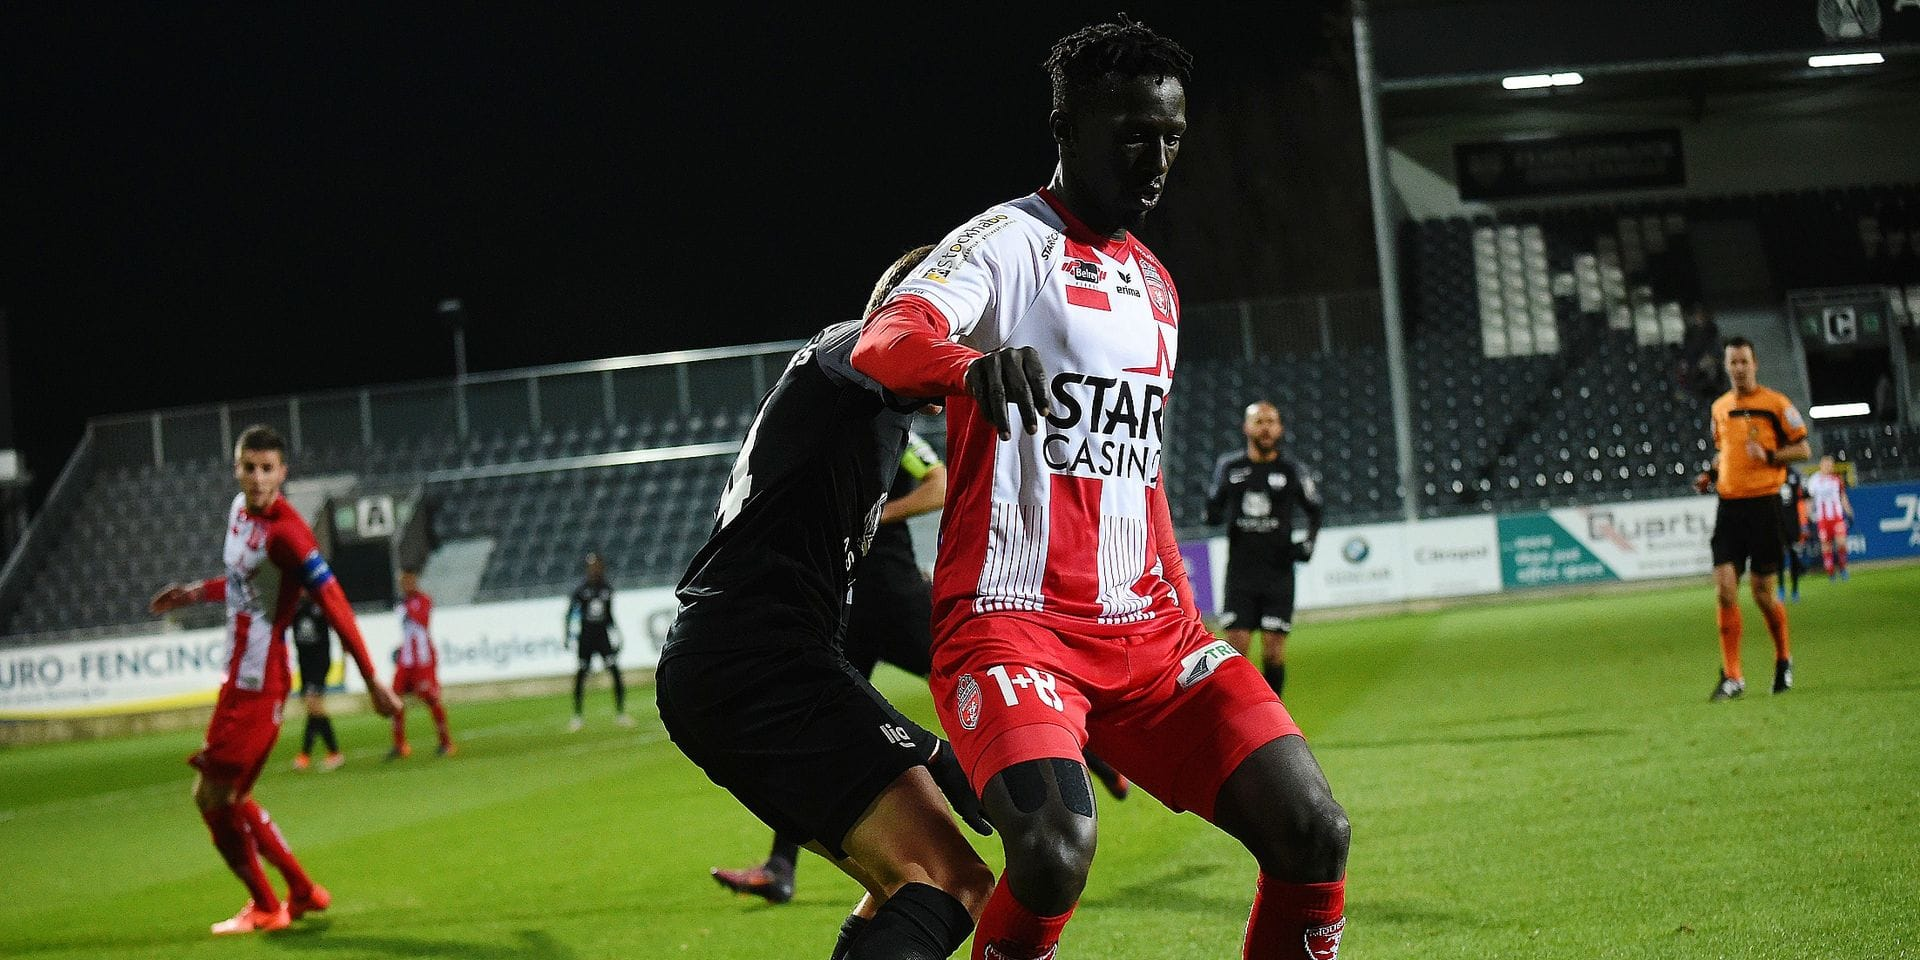 Eupen's Silas Gnaka and Mouscron's Mbaye Leye fight for the ball during a soccer match between KAS Eupen and Royal Excel Mouscron, Saturday 15 December 2018 in Eupen, on day 19 of the 'Jupiler Pro League' Belgian soccer championship season 2018-2019. BELGA PHOTO JOHN THYS